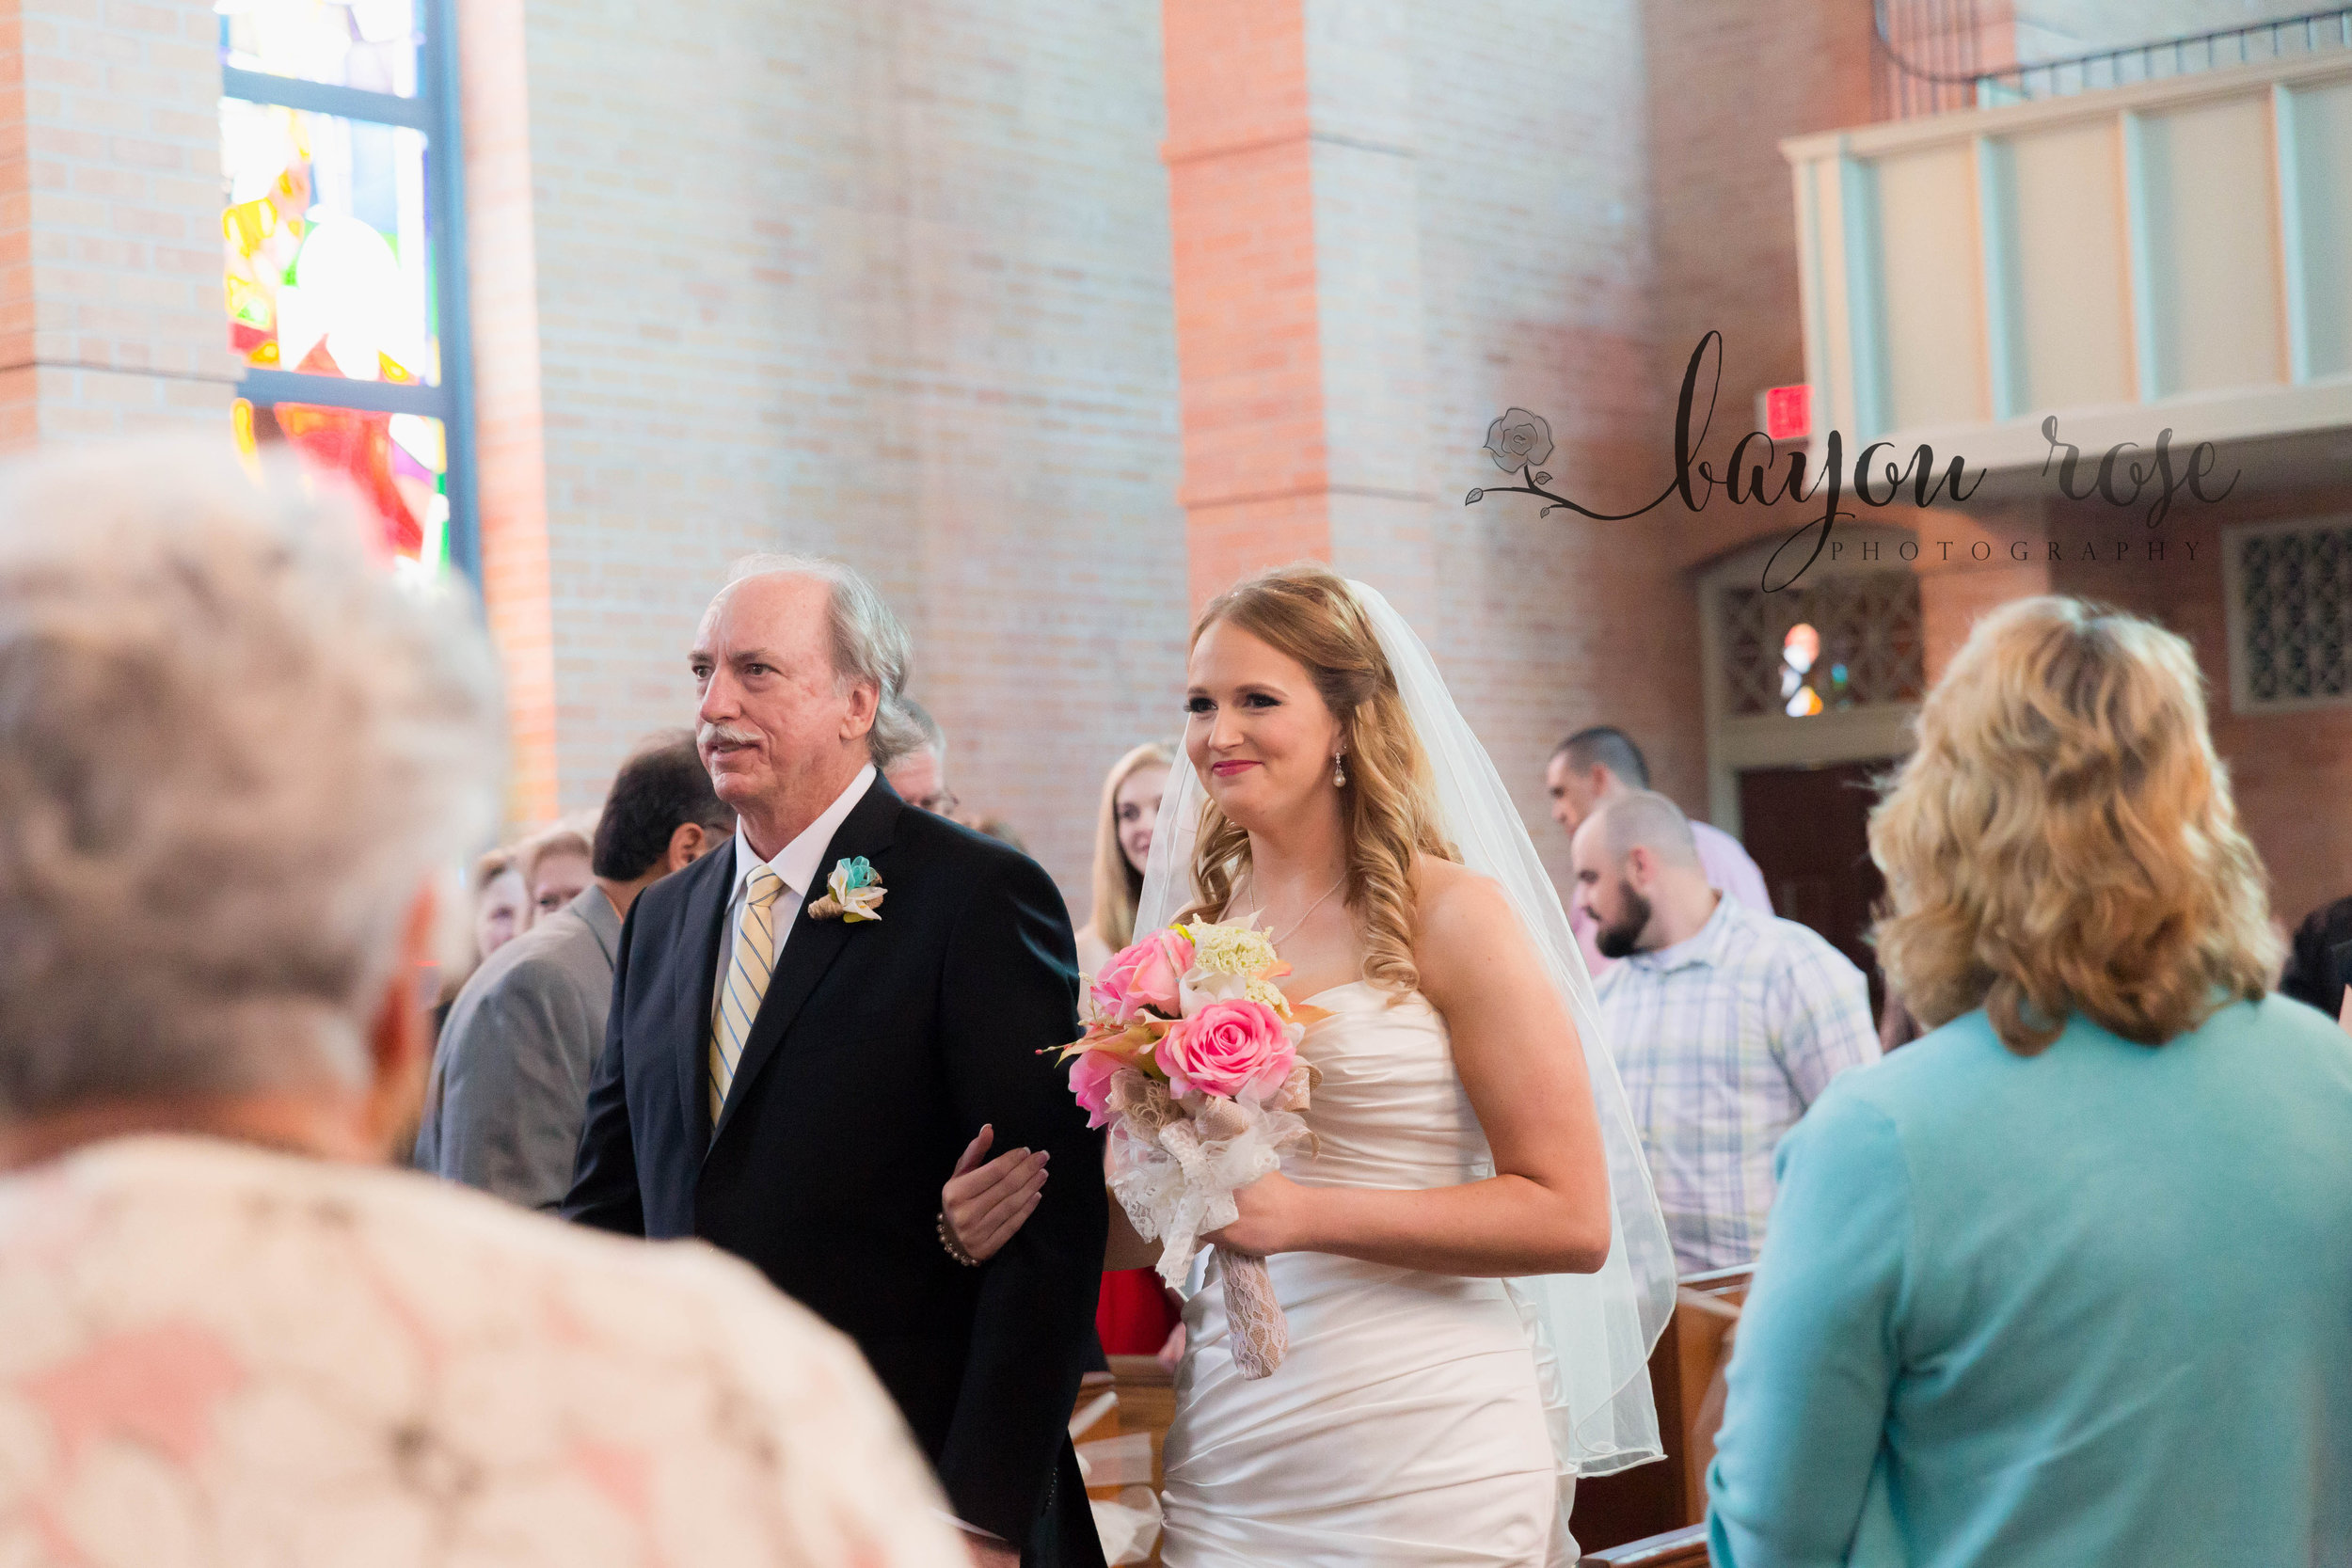 Documentary Wedding Photography Baton Rouge Gene and April-121.jpg